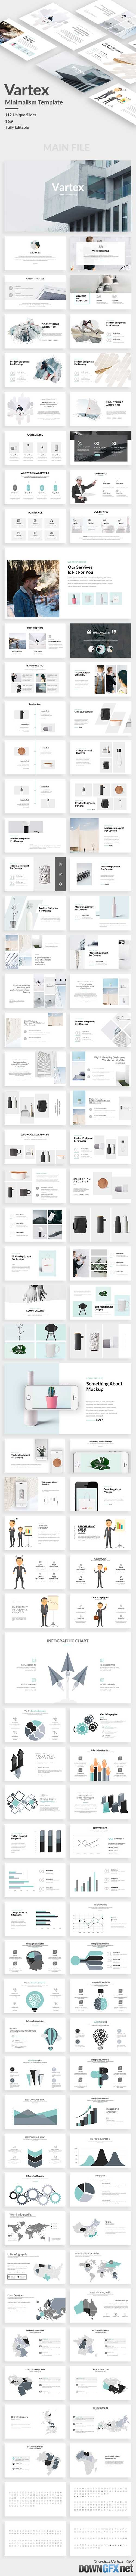 Vartex Minimal Powerpoint Template 20694199